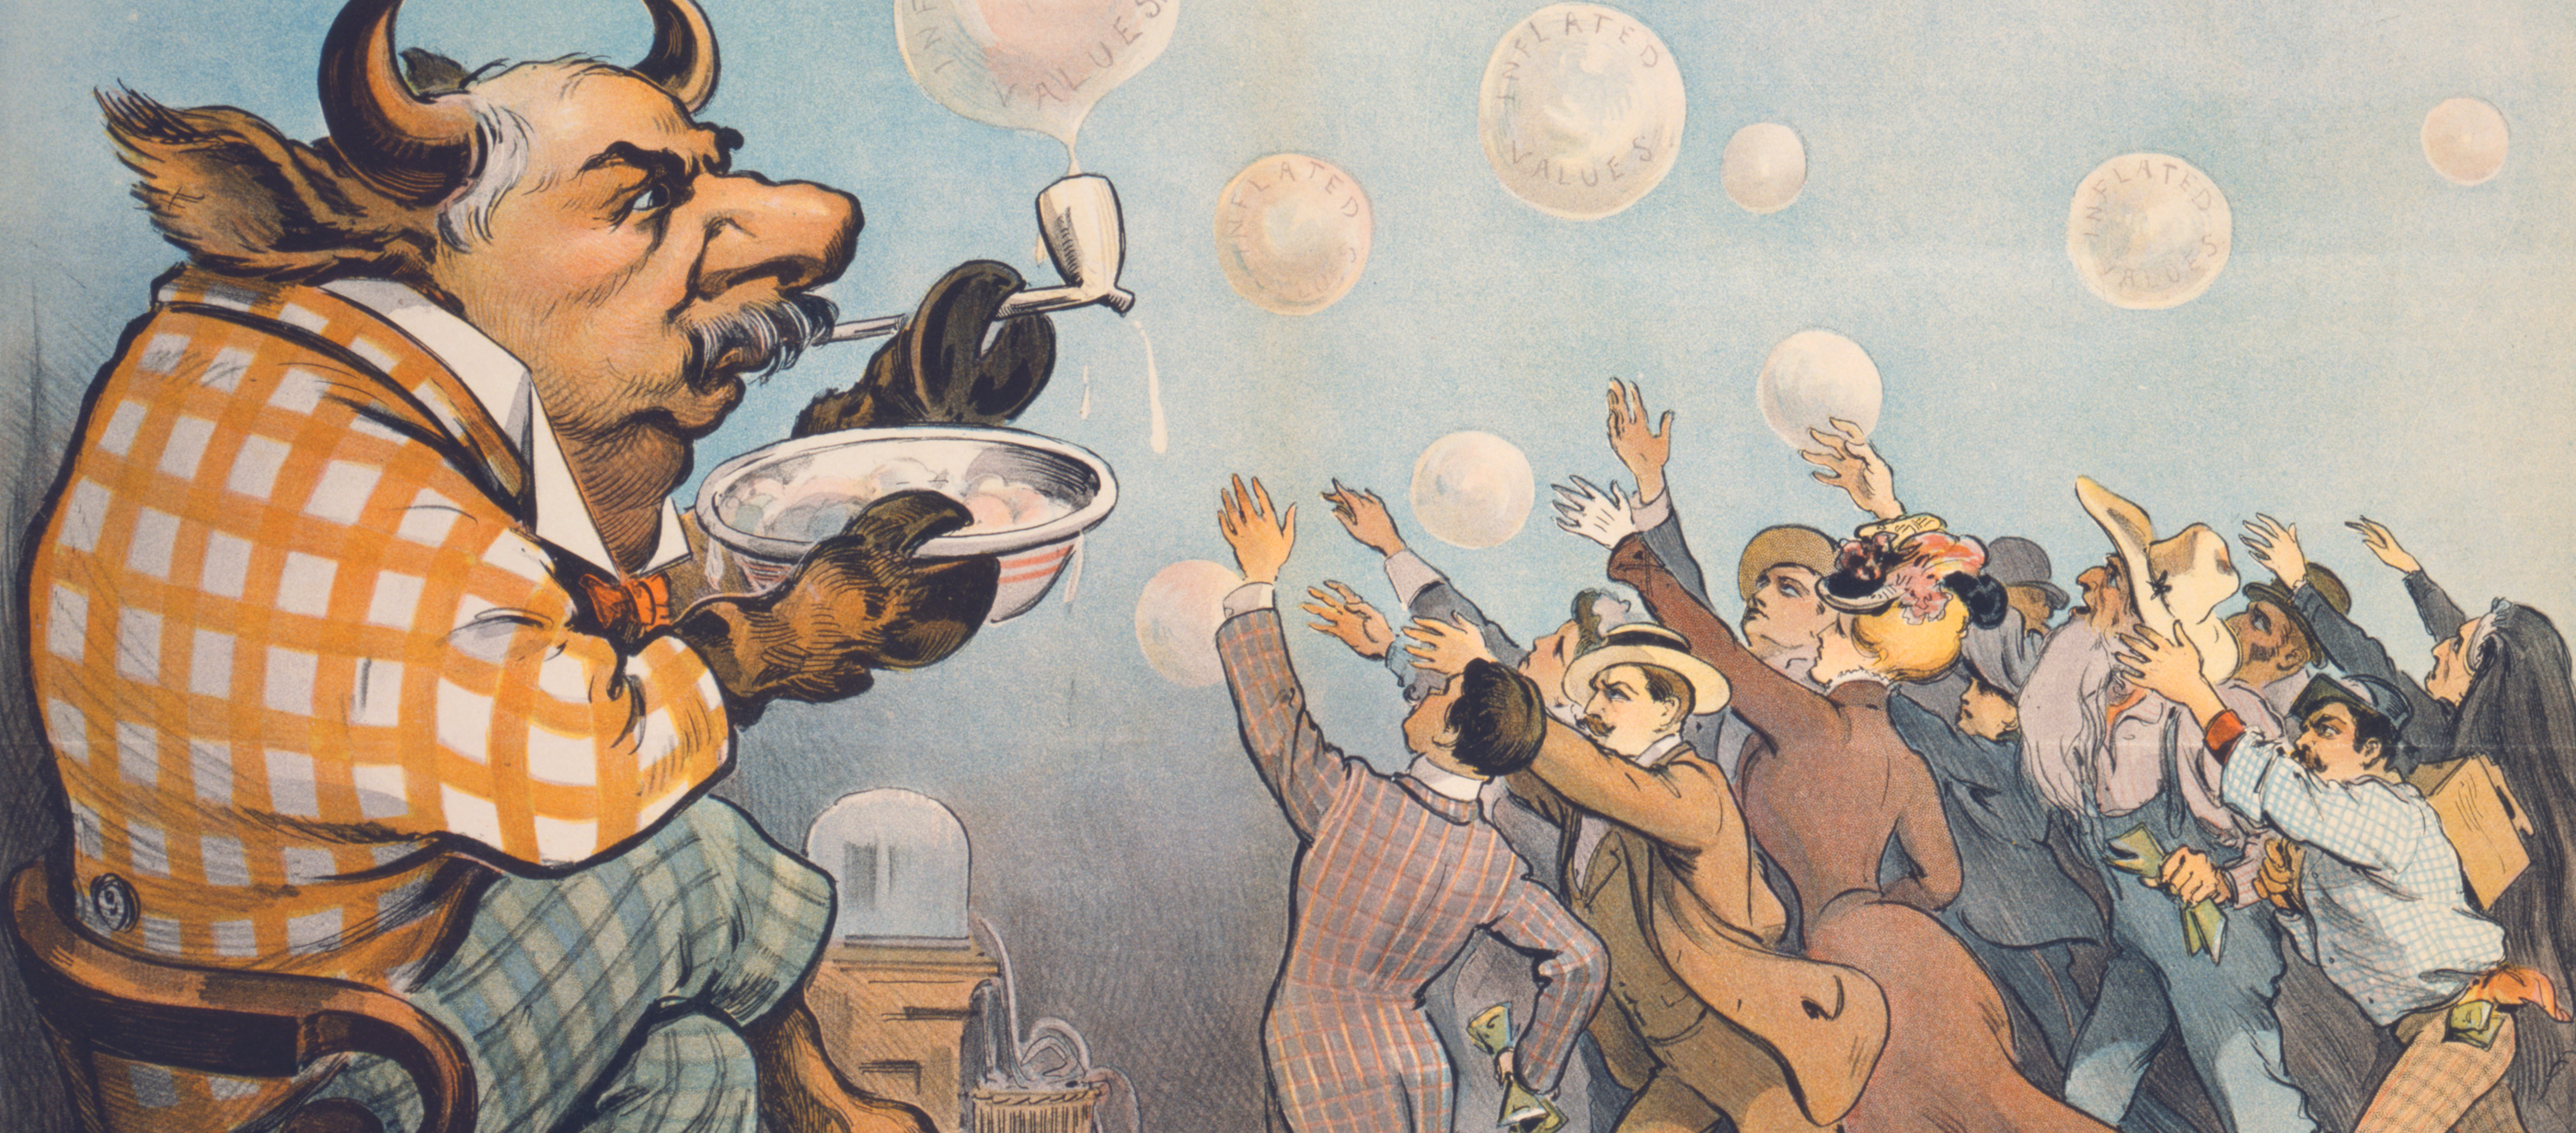 Wall Street Bubbles—Always the Same, by Joseph Keppler Jr., 1901.